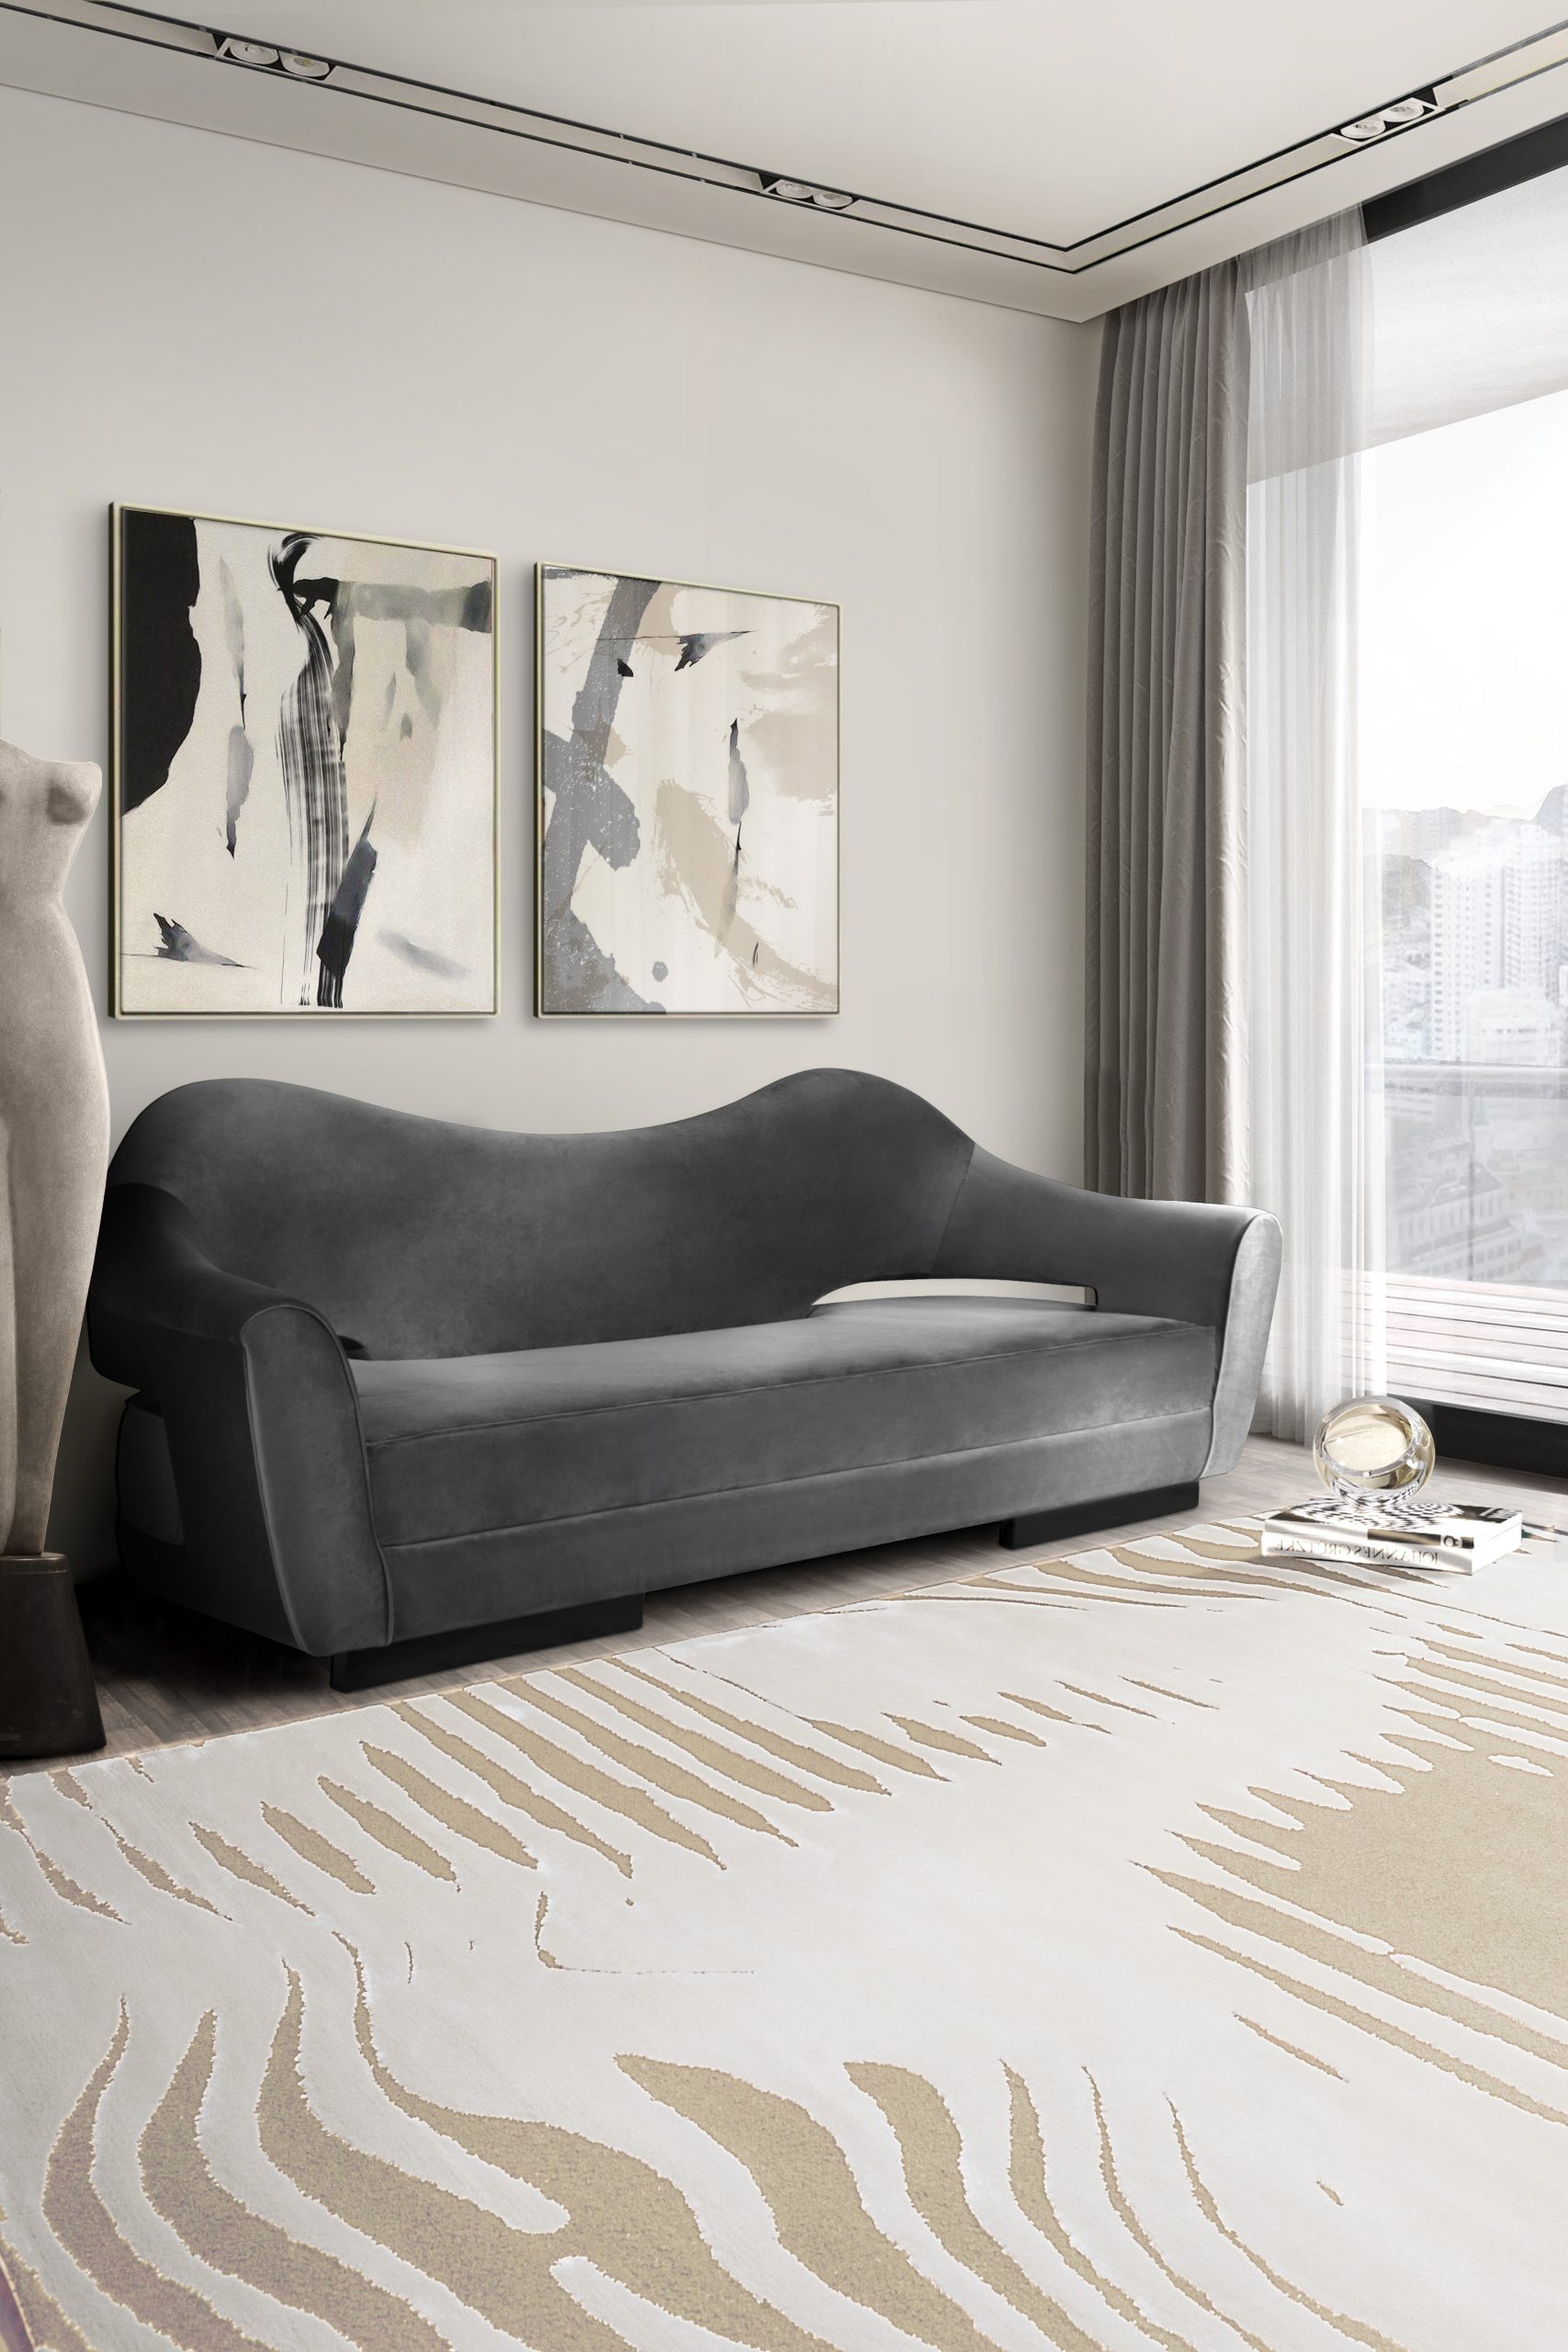 Best Monochromatic Rugs To Get You Started On This Trend monochromatic rugs Best Monochromatic Rugs To Get You Started On This Trend kotta living room scaled